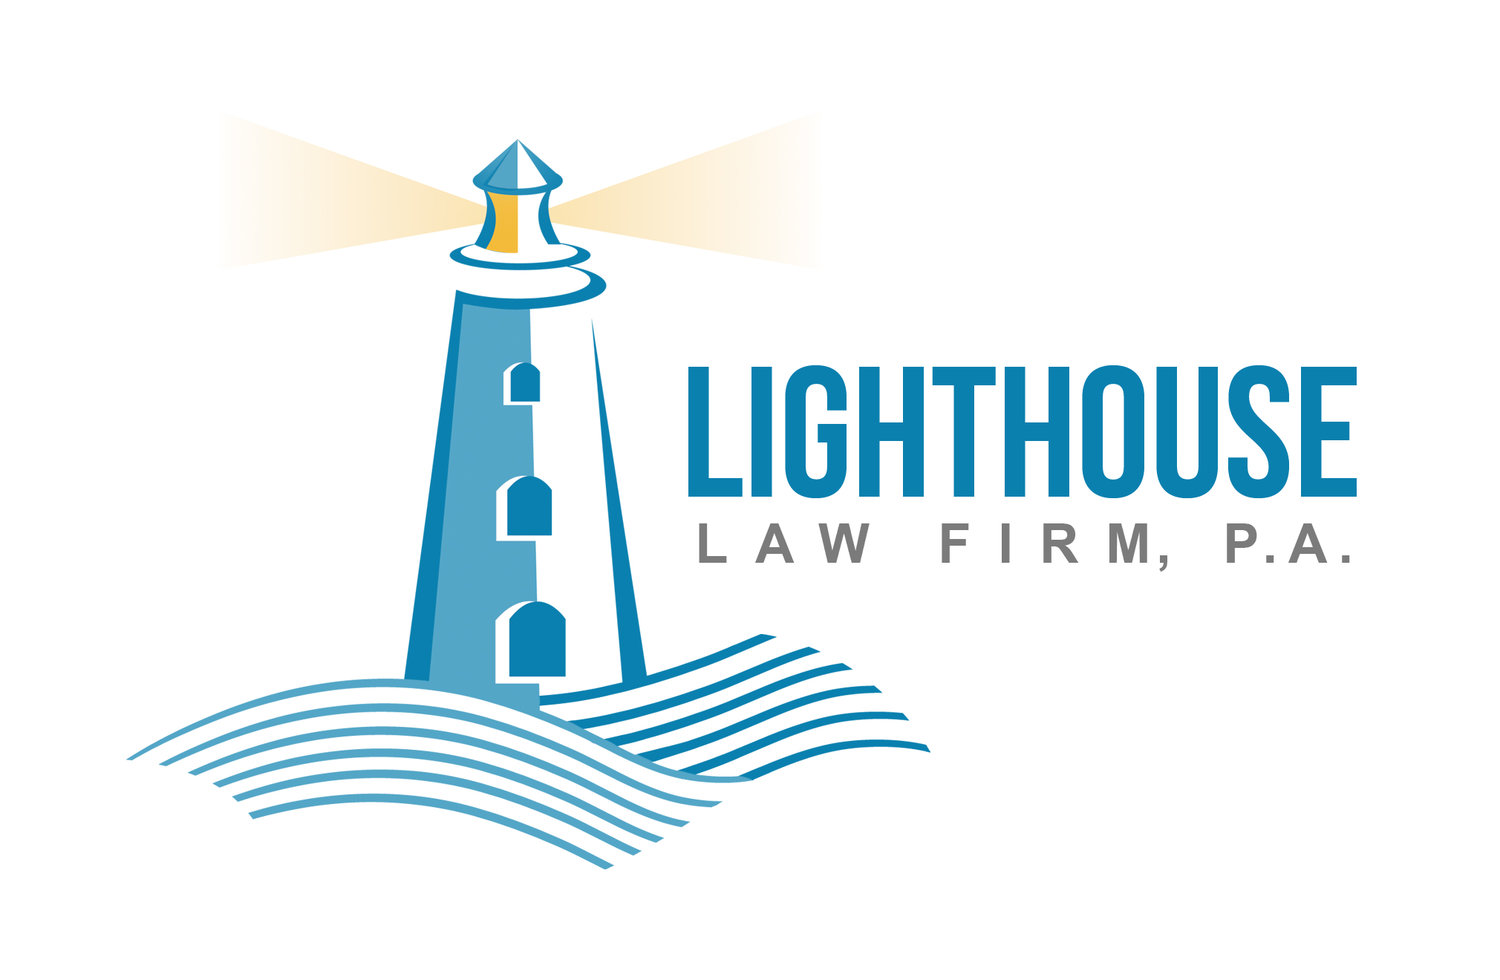 Lighthouse Law Firm, P.A.